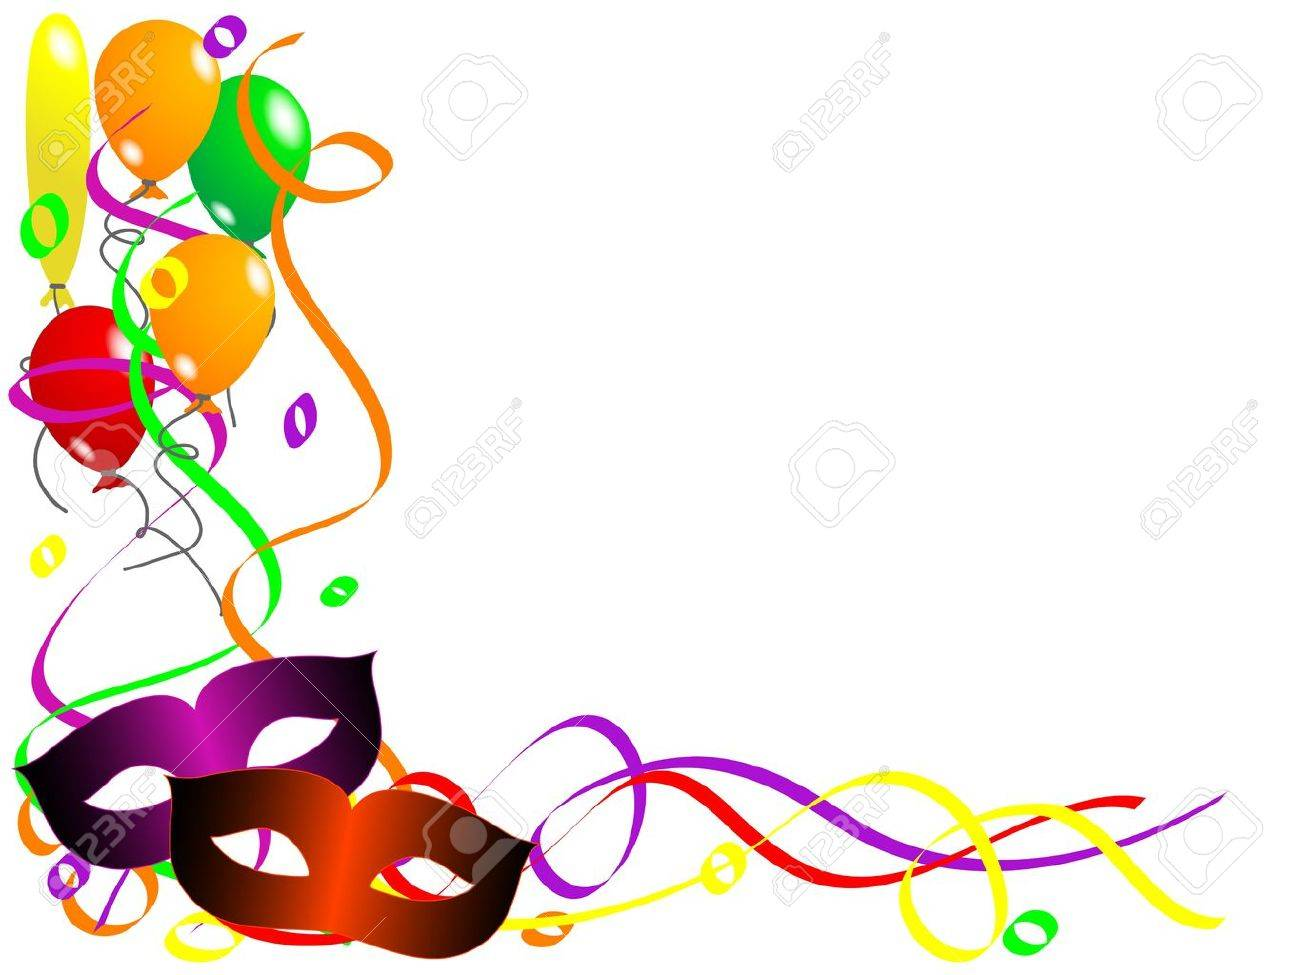 Carnival background with balloons, ribbons and face masks Stock Vector - 12011301